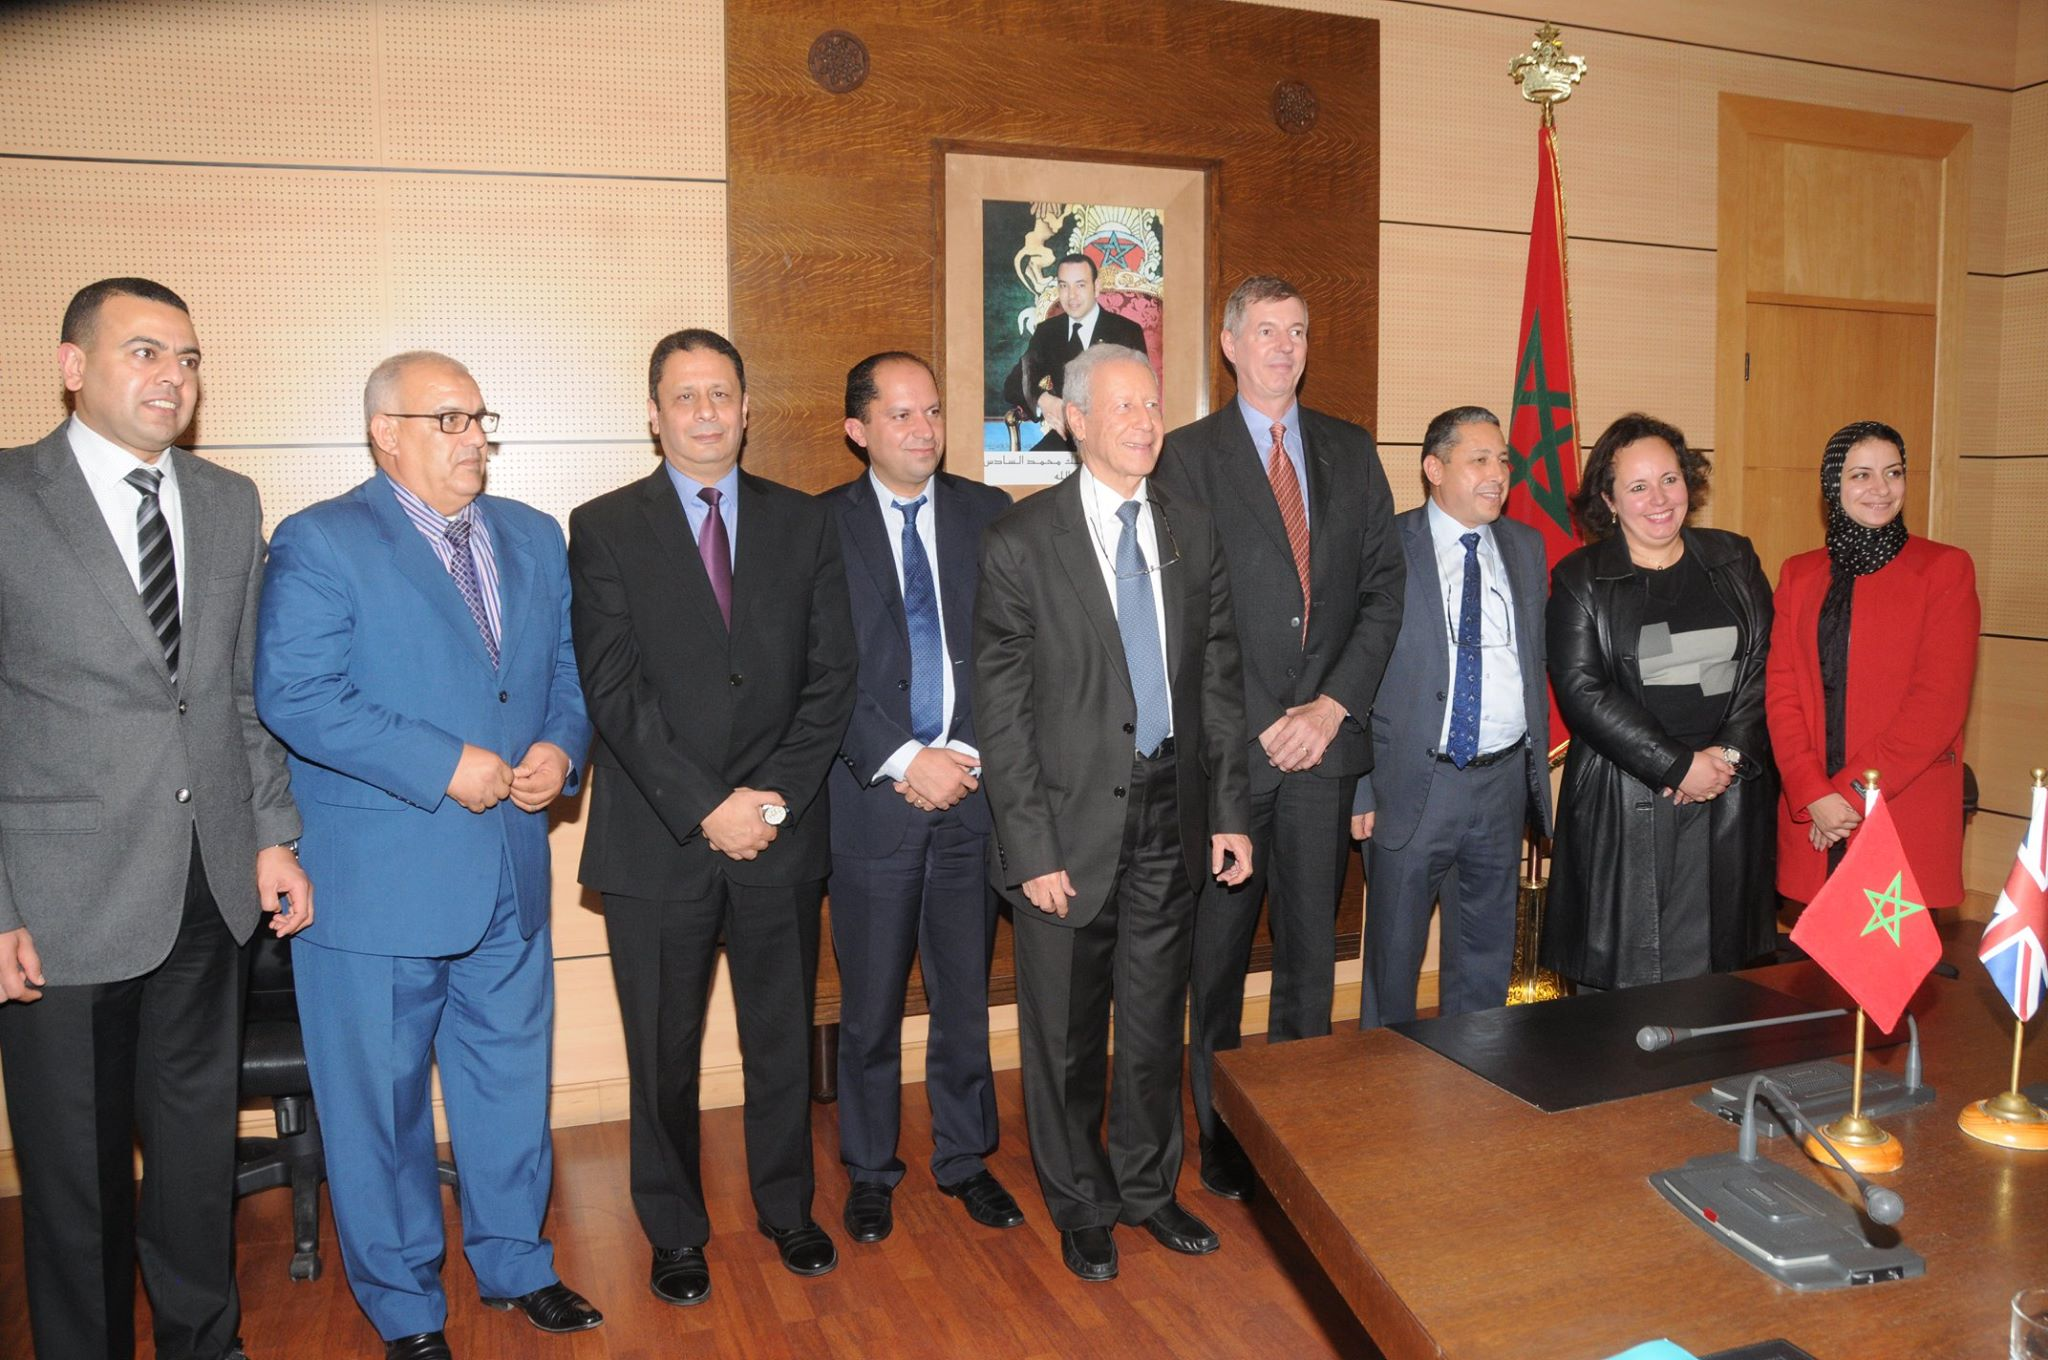 Morocco's Ministry of National Education and Vocational Training and the British Council